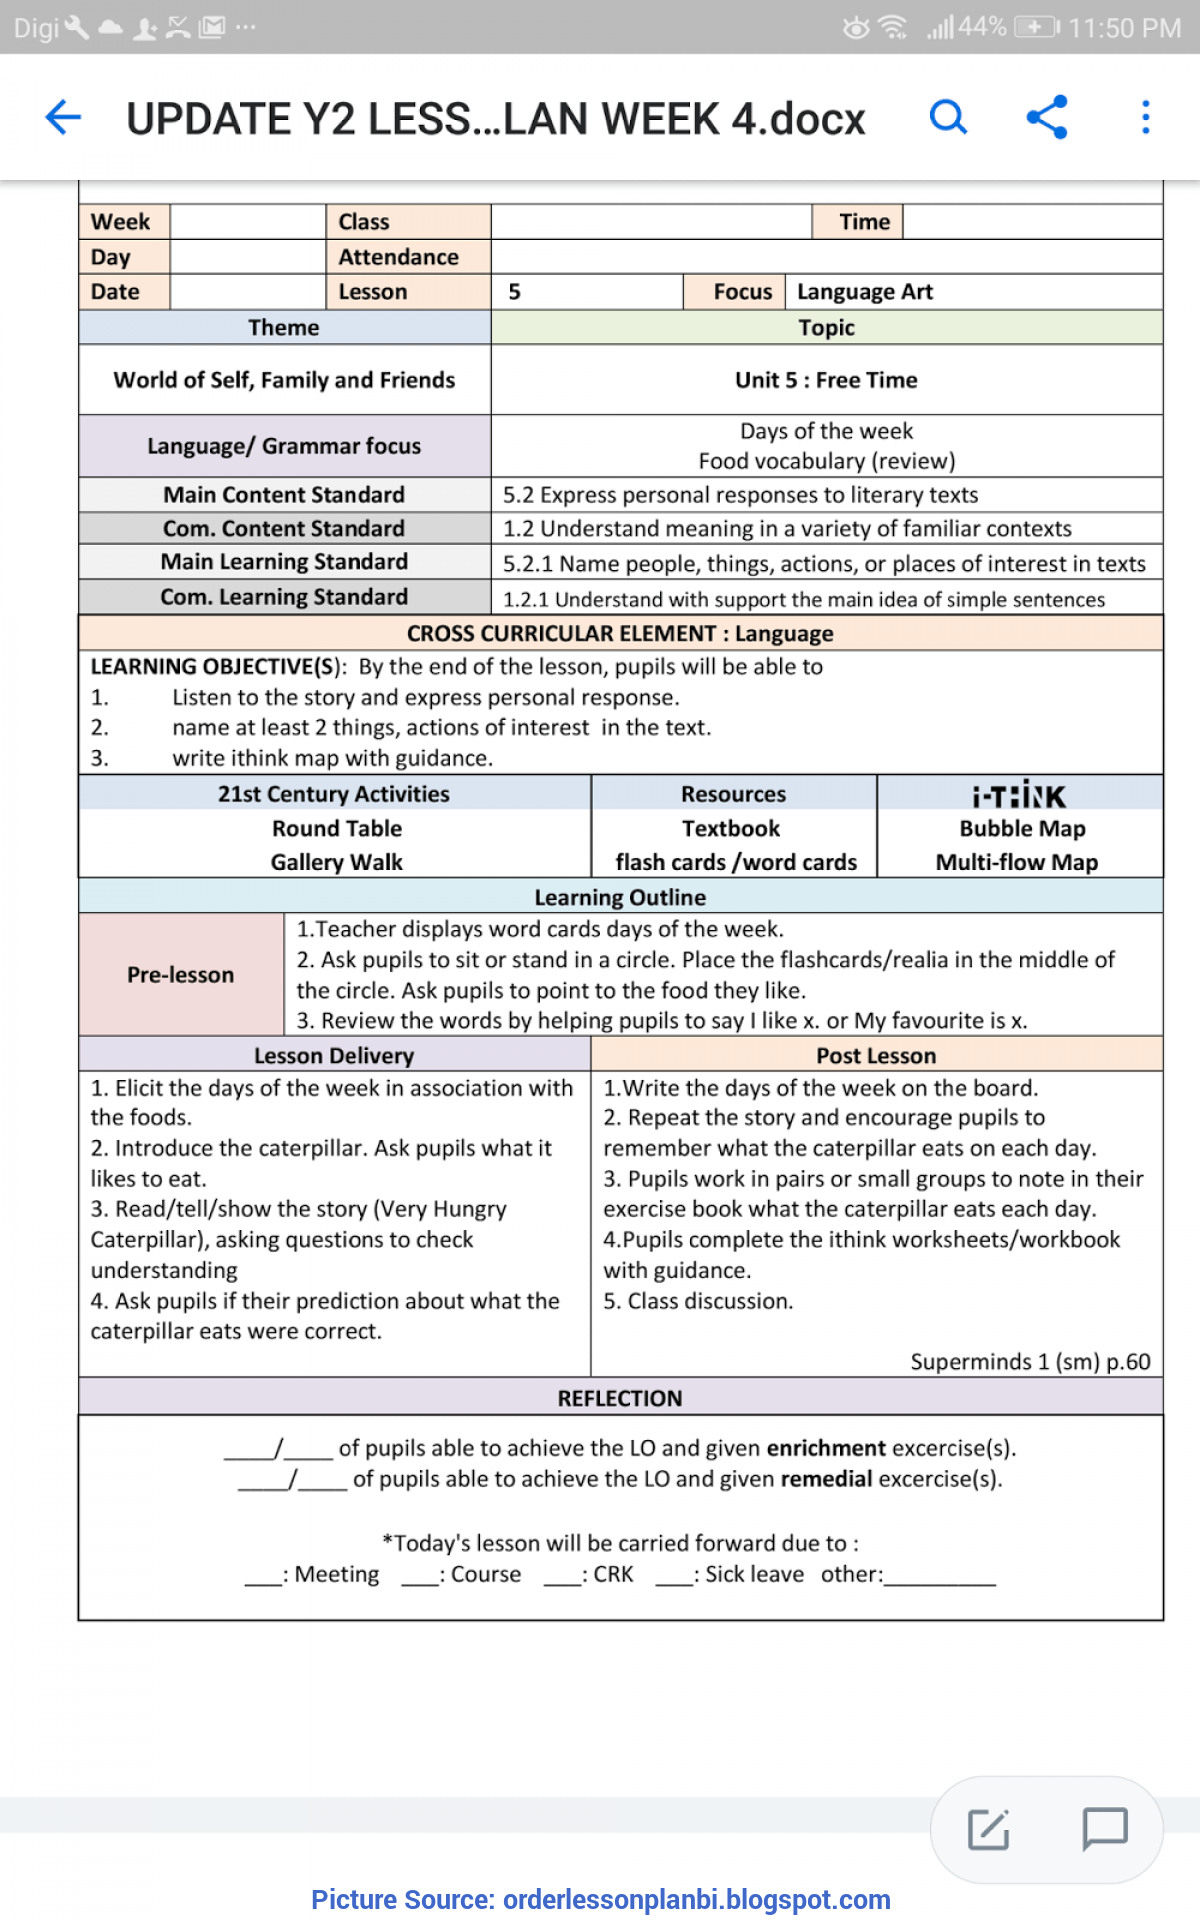 Typical Lesson Plan Template Cefr Year 2 Cefr Unit 5 Free